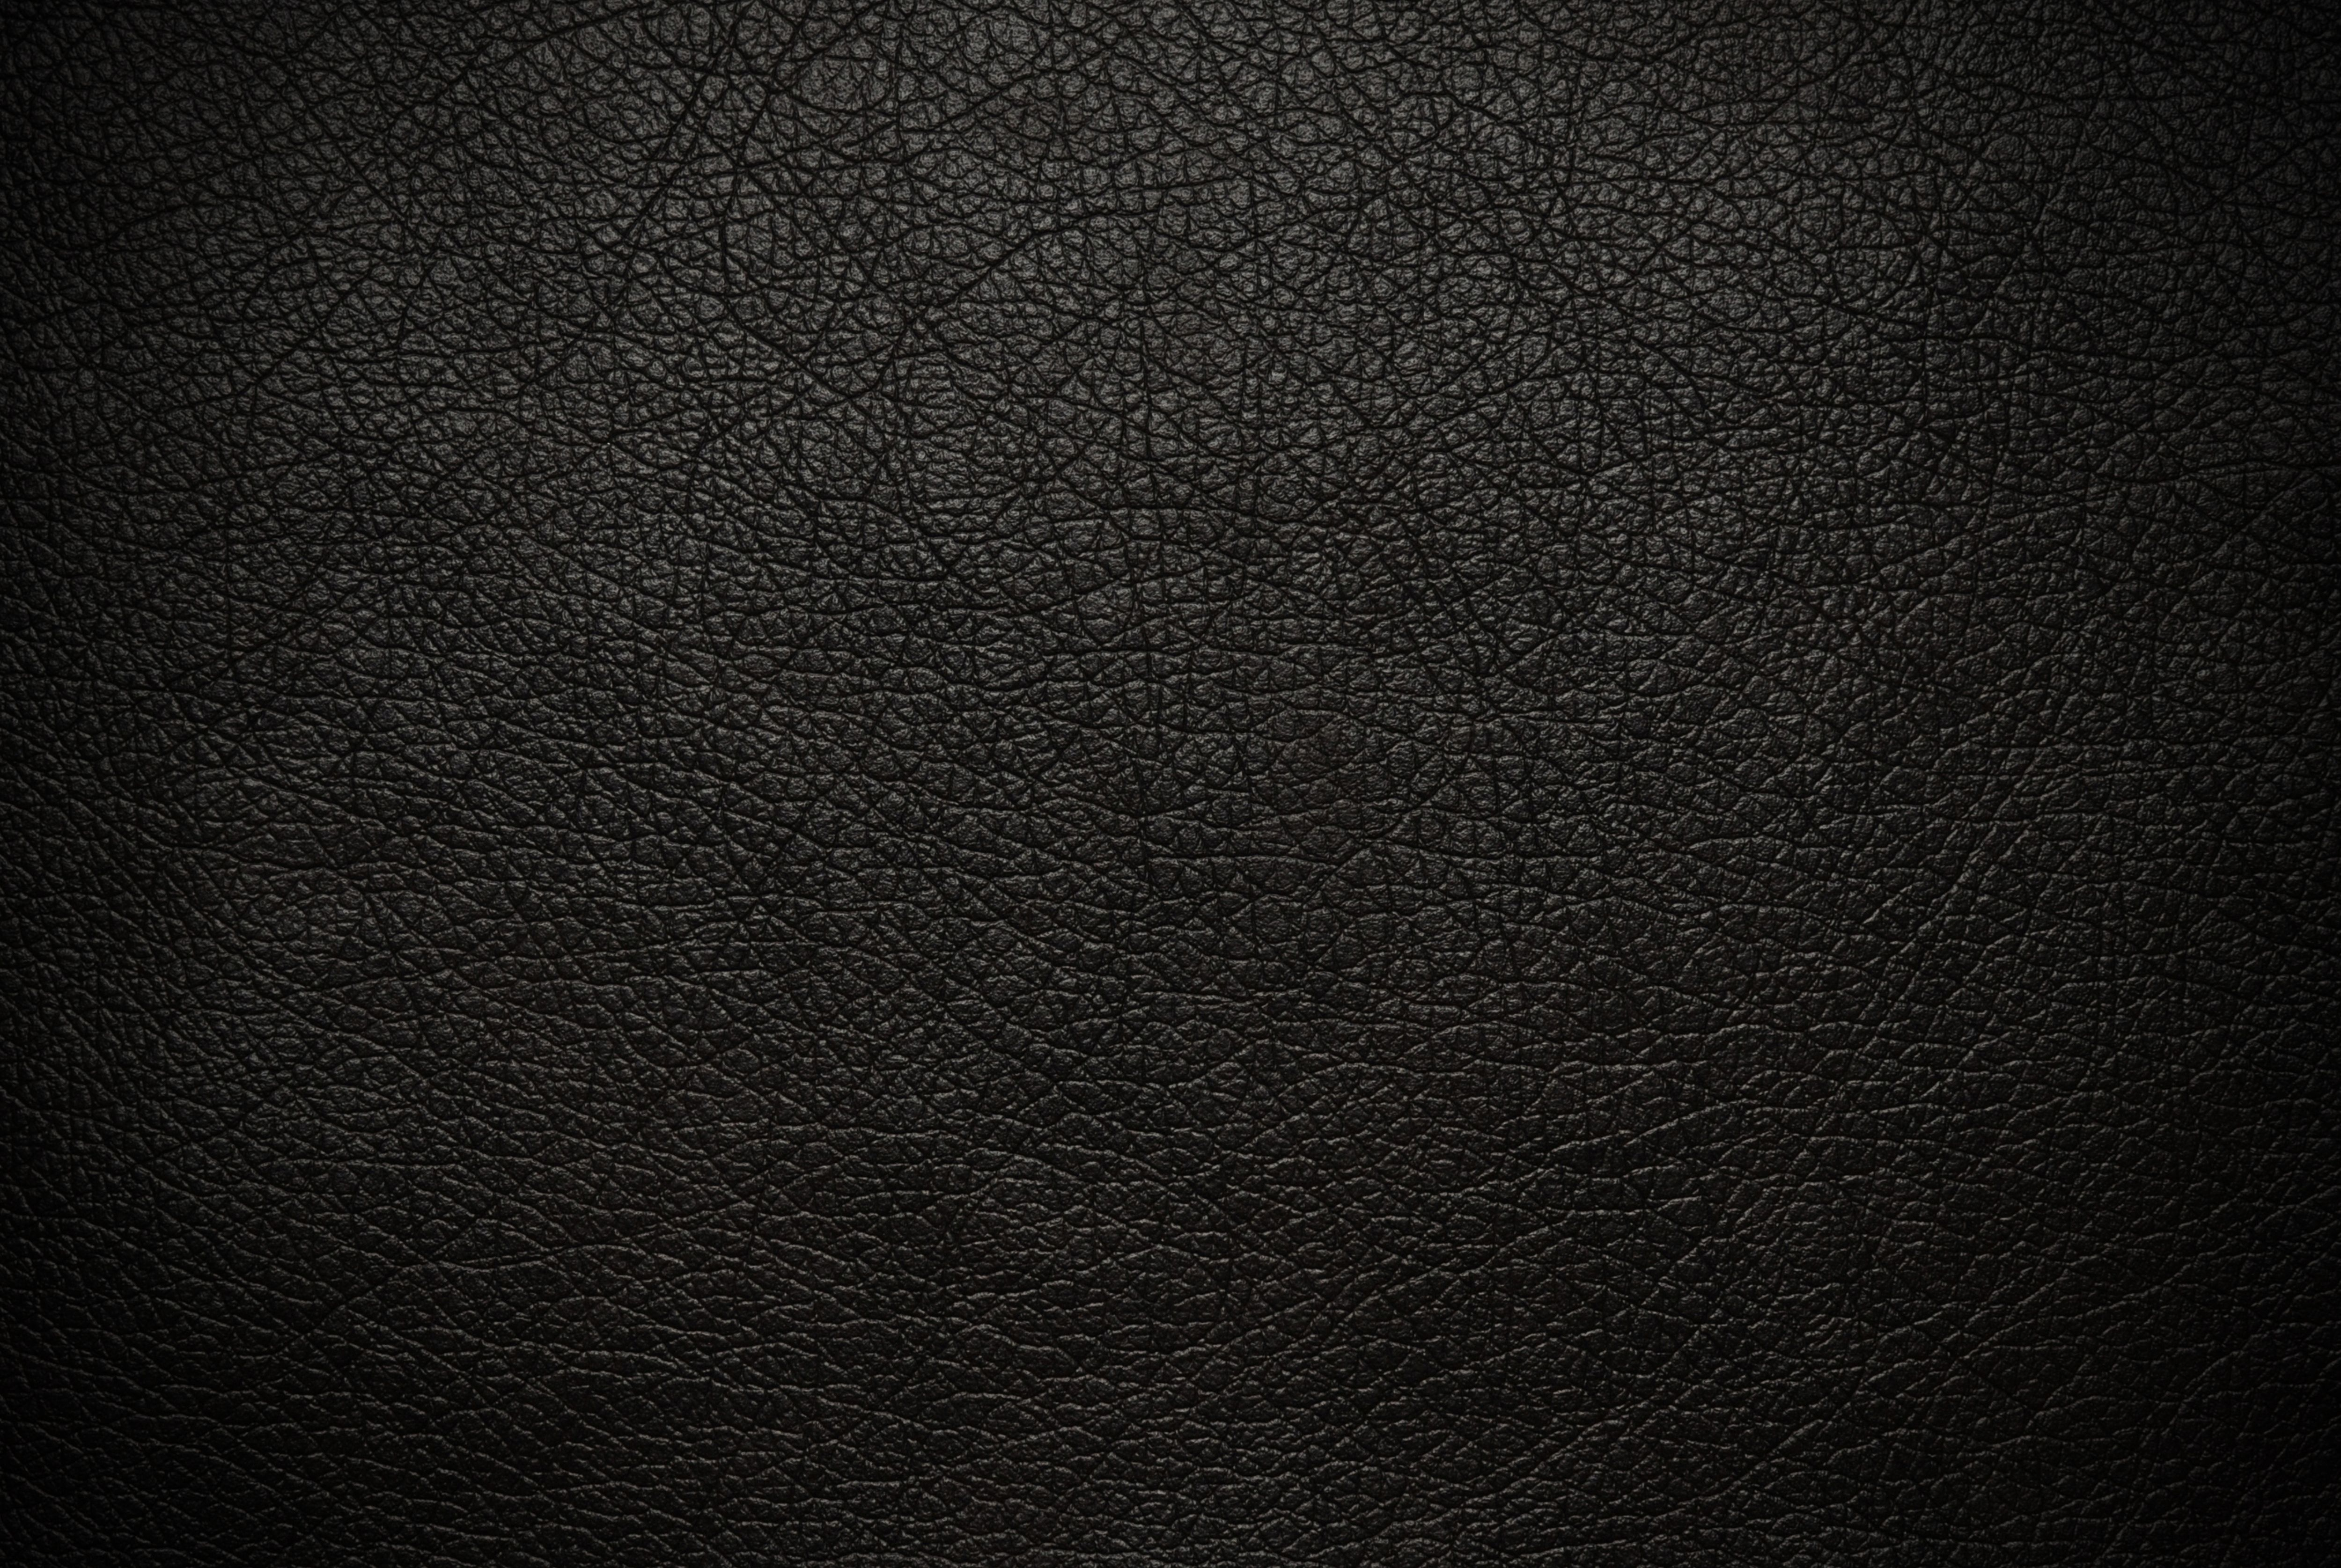 black texture wallpapers 3856 - photo #3